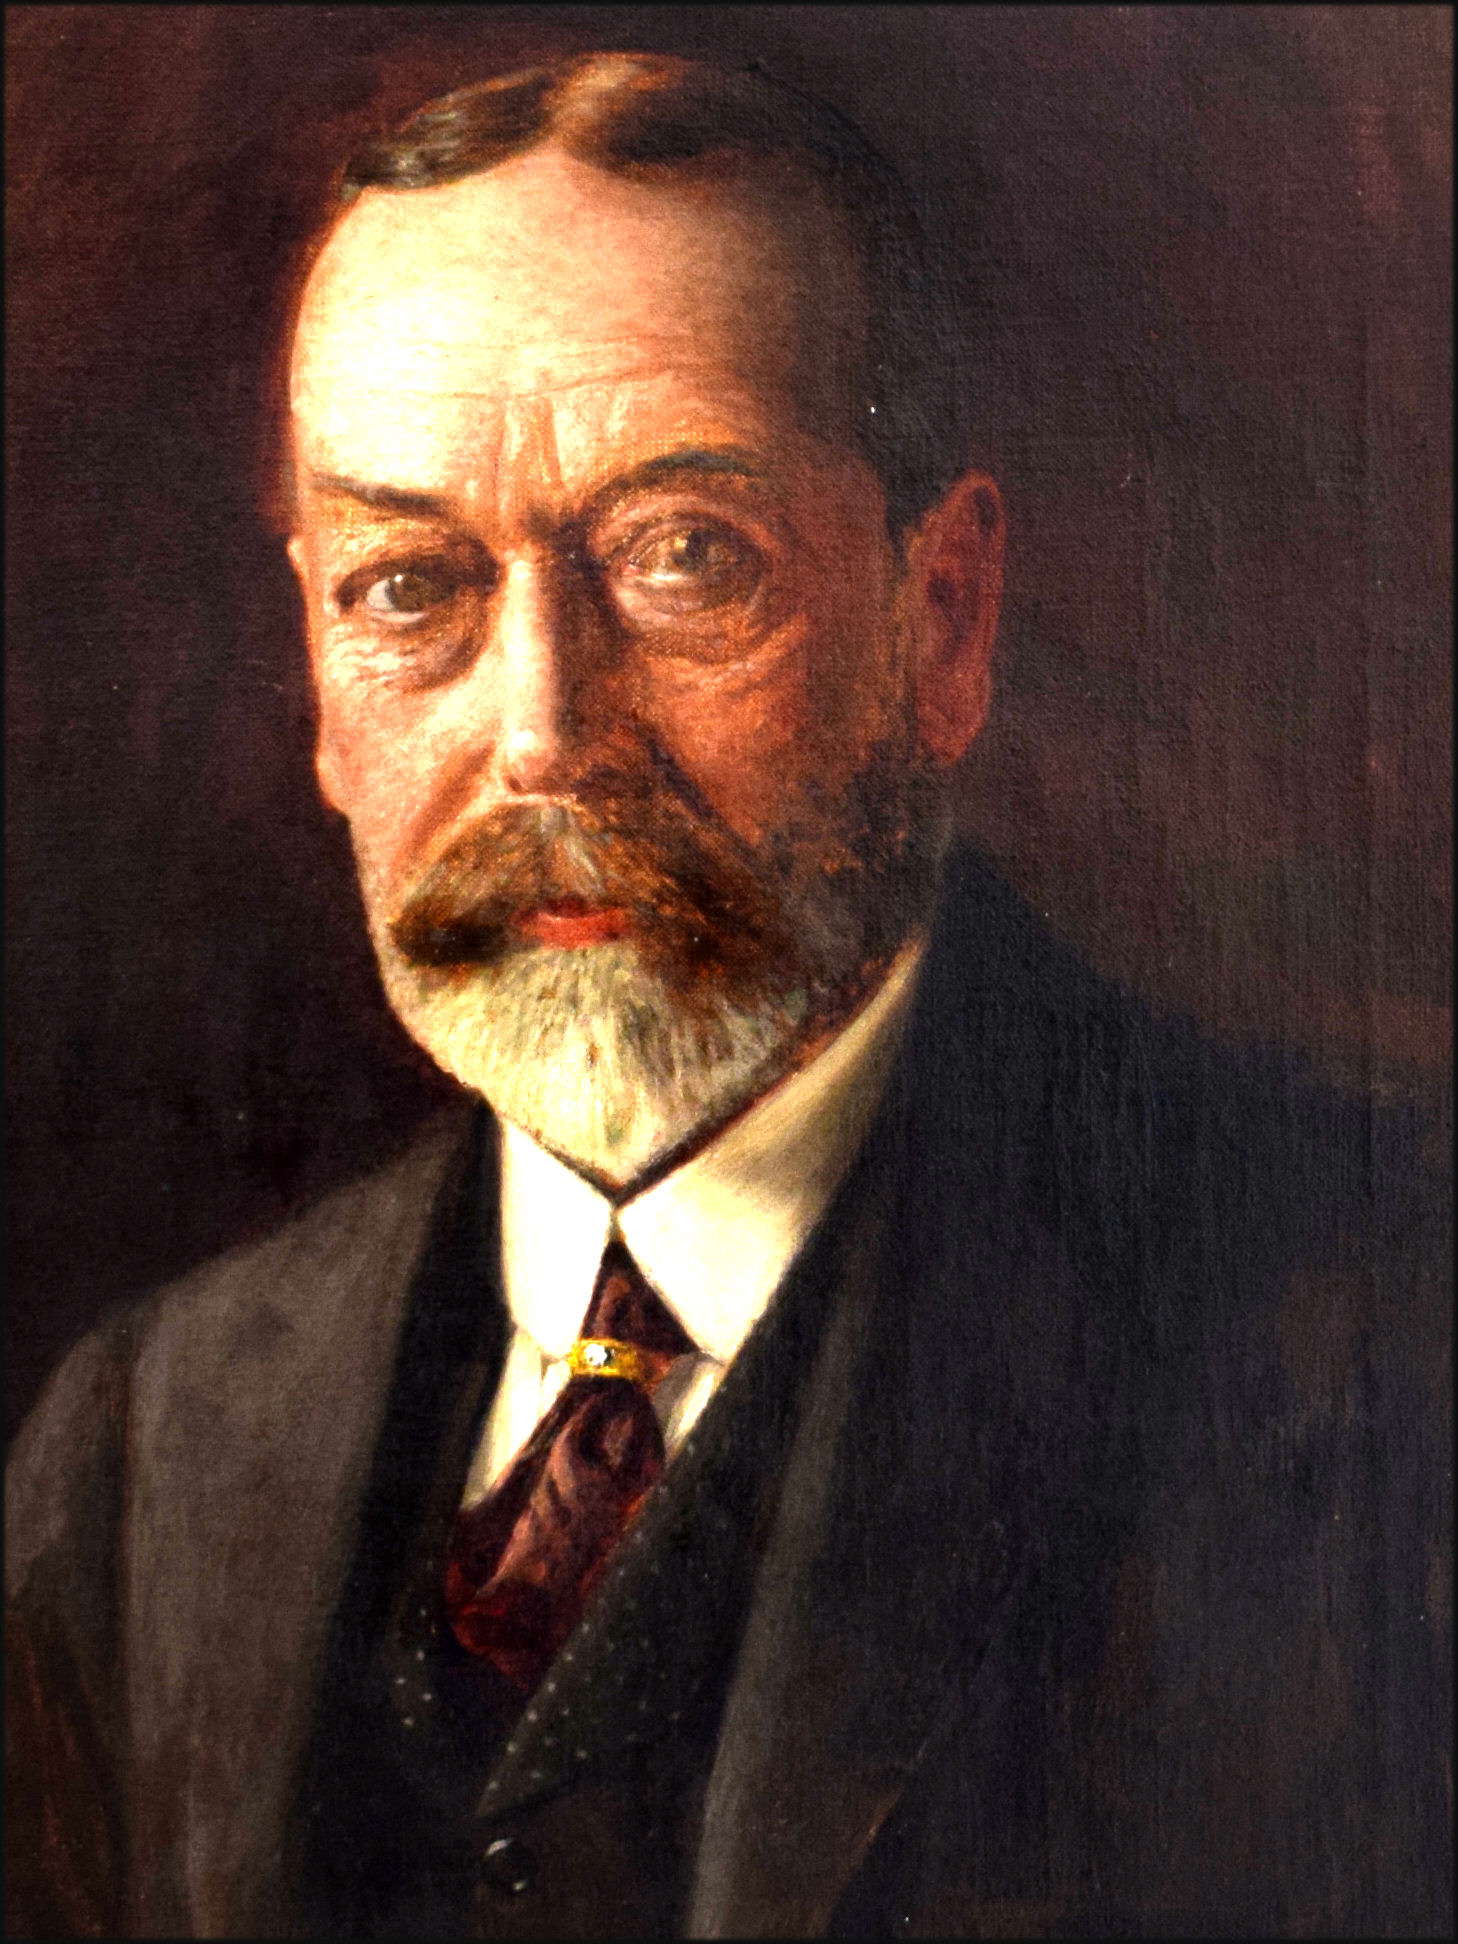 Portrait of King George V by Sir Oswald Birley painted in 1933. Private collection, Bedfordshire.